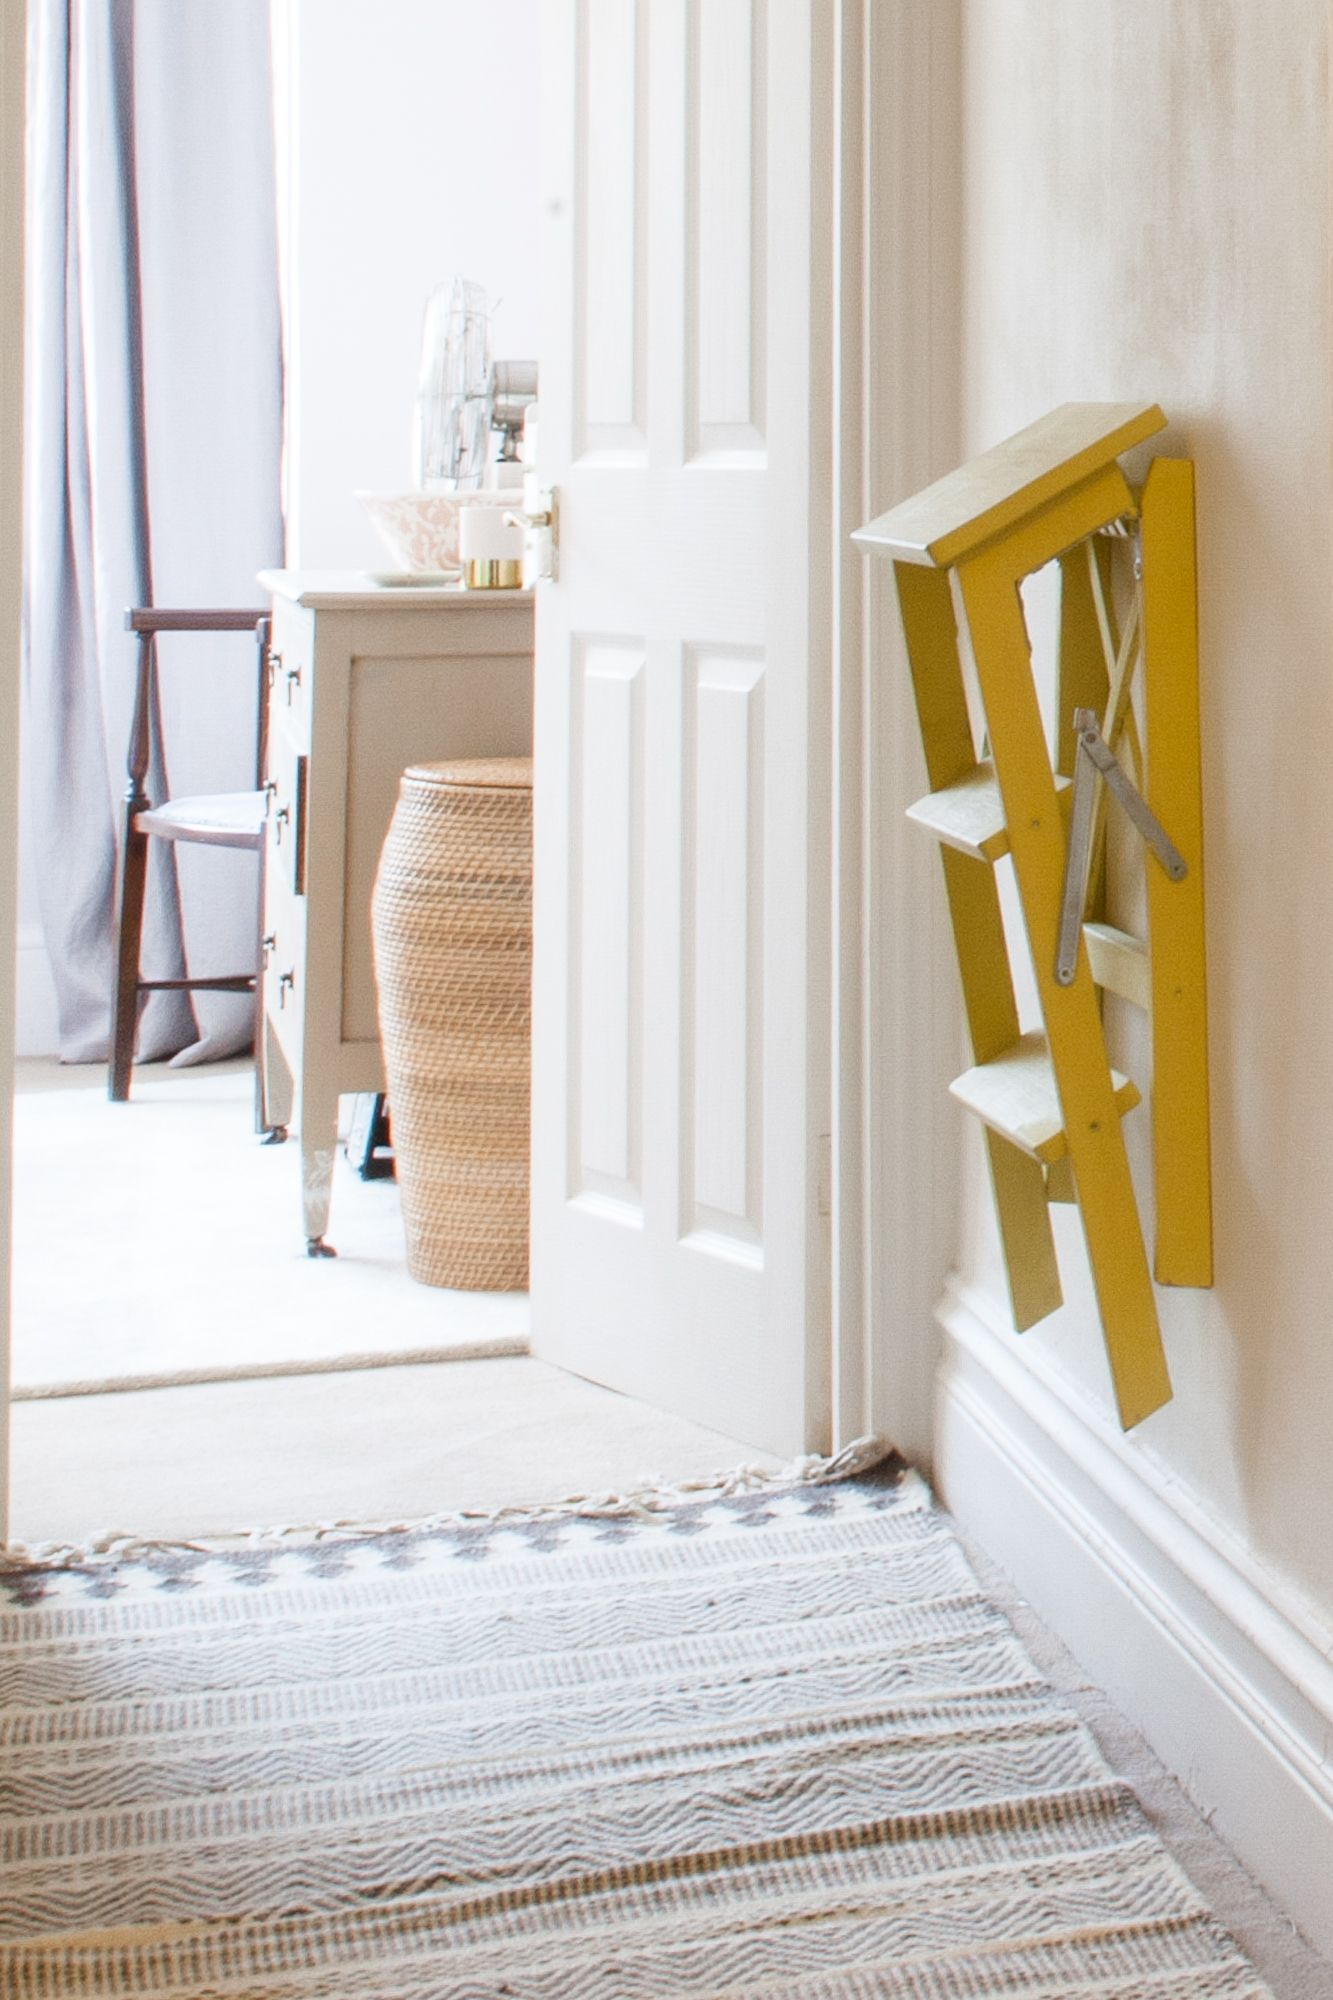 The Best IKEA Products for Small Spaces | Furniture for ...